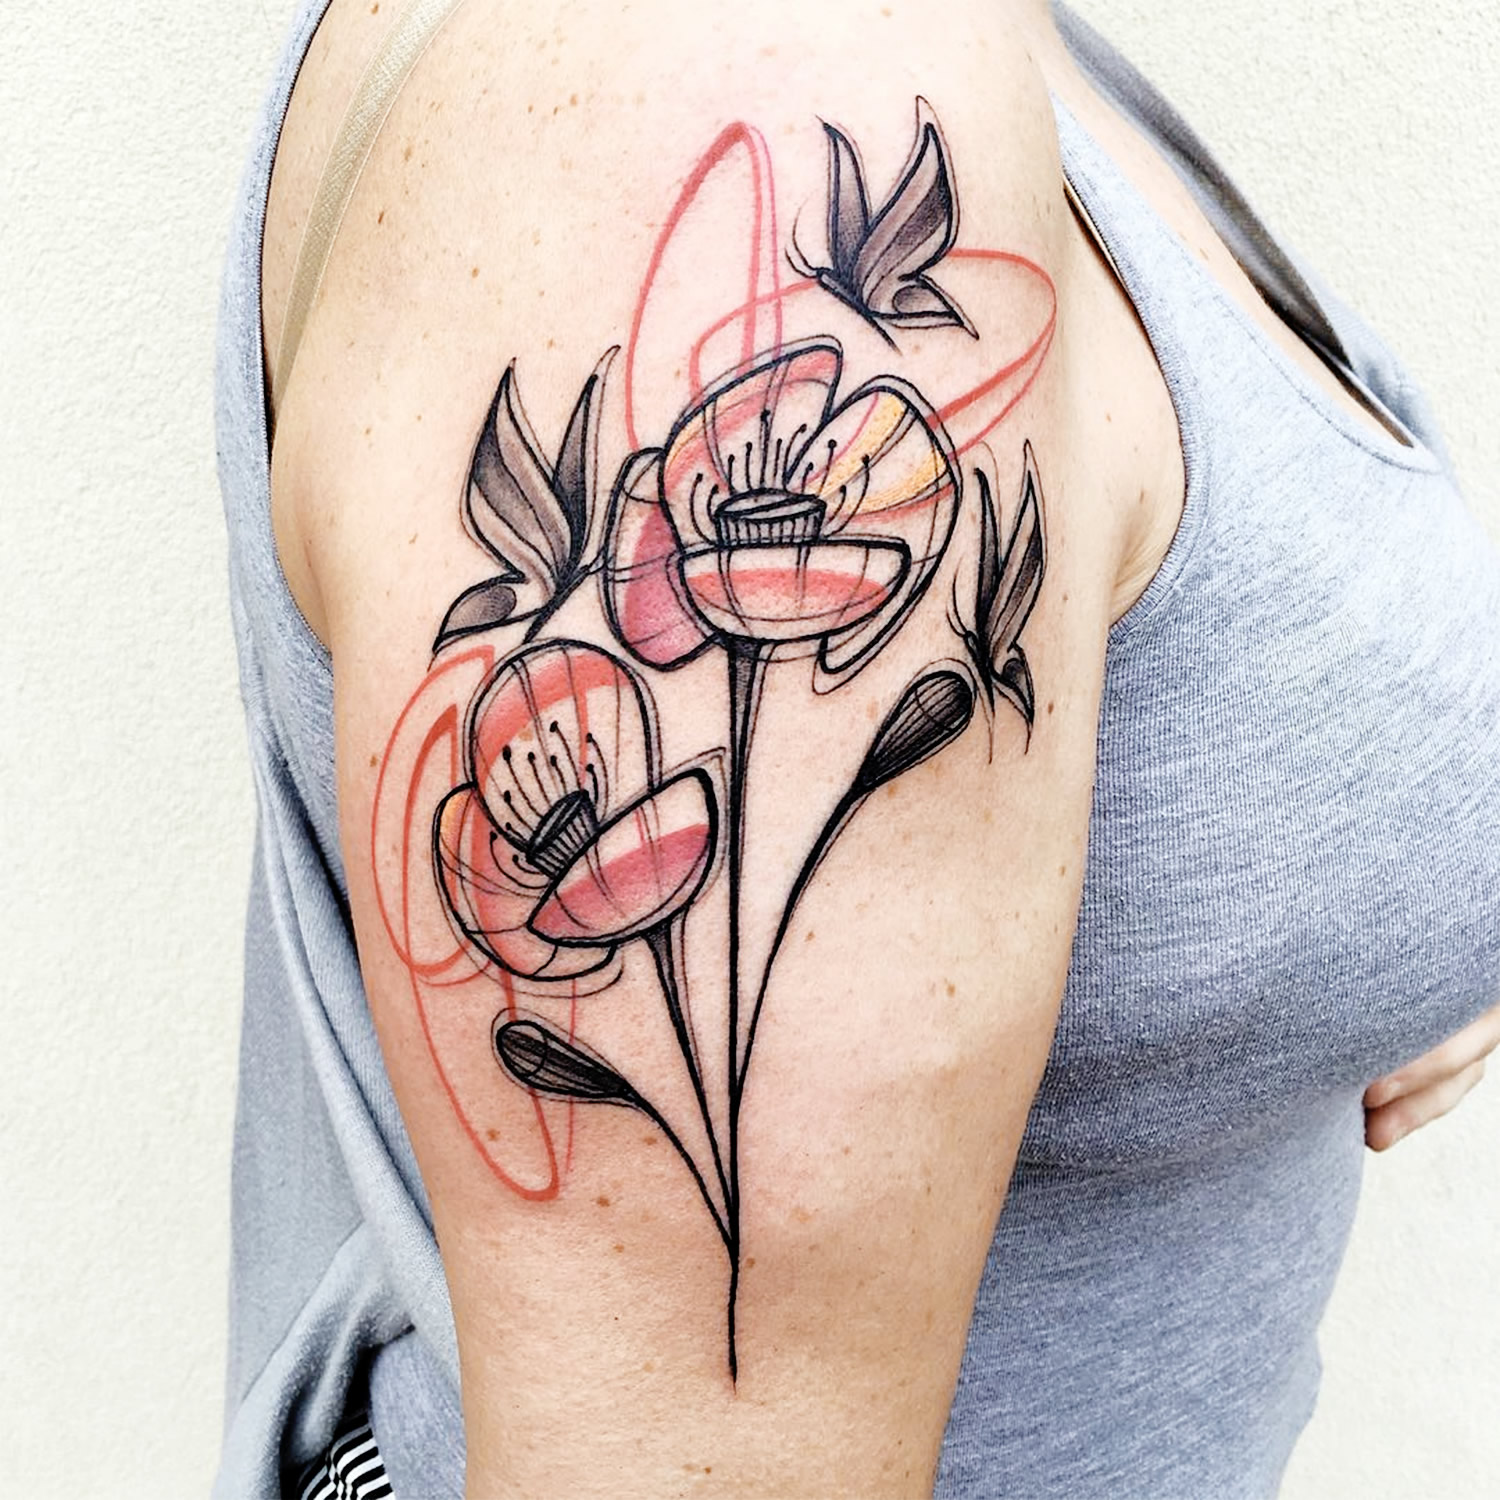 sketch style flower tattoo on arm